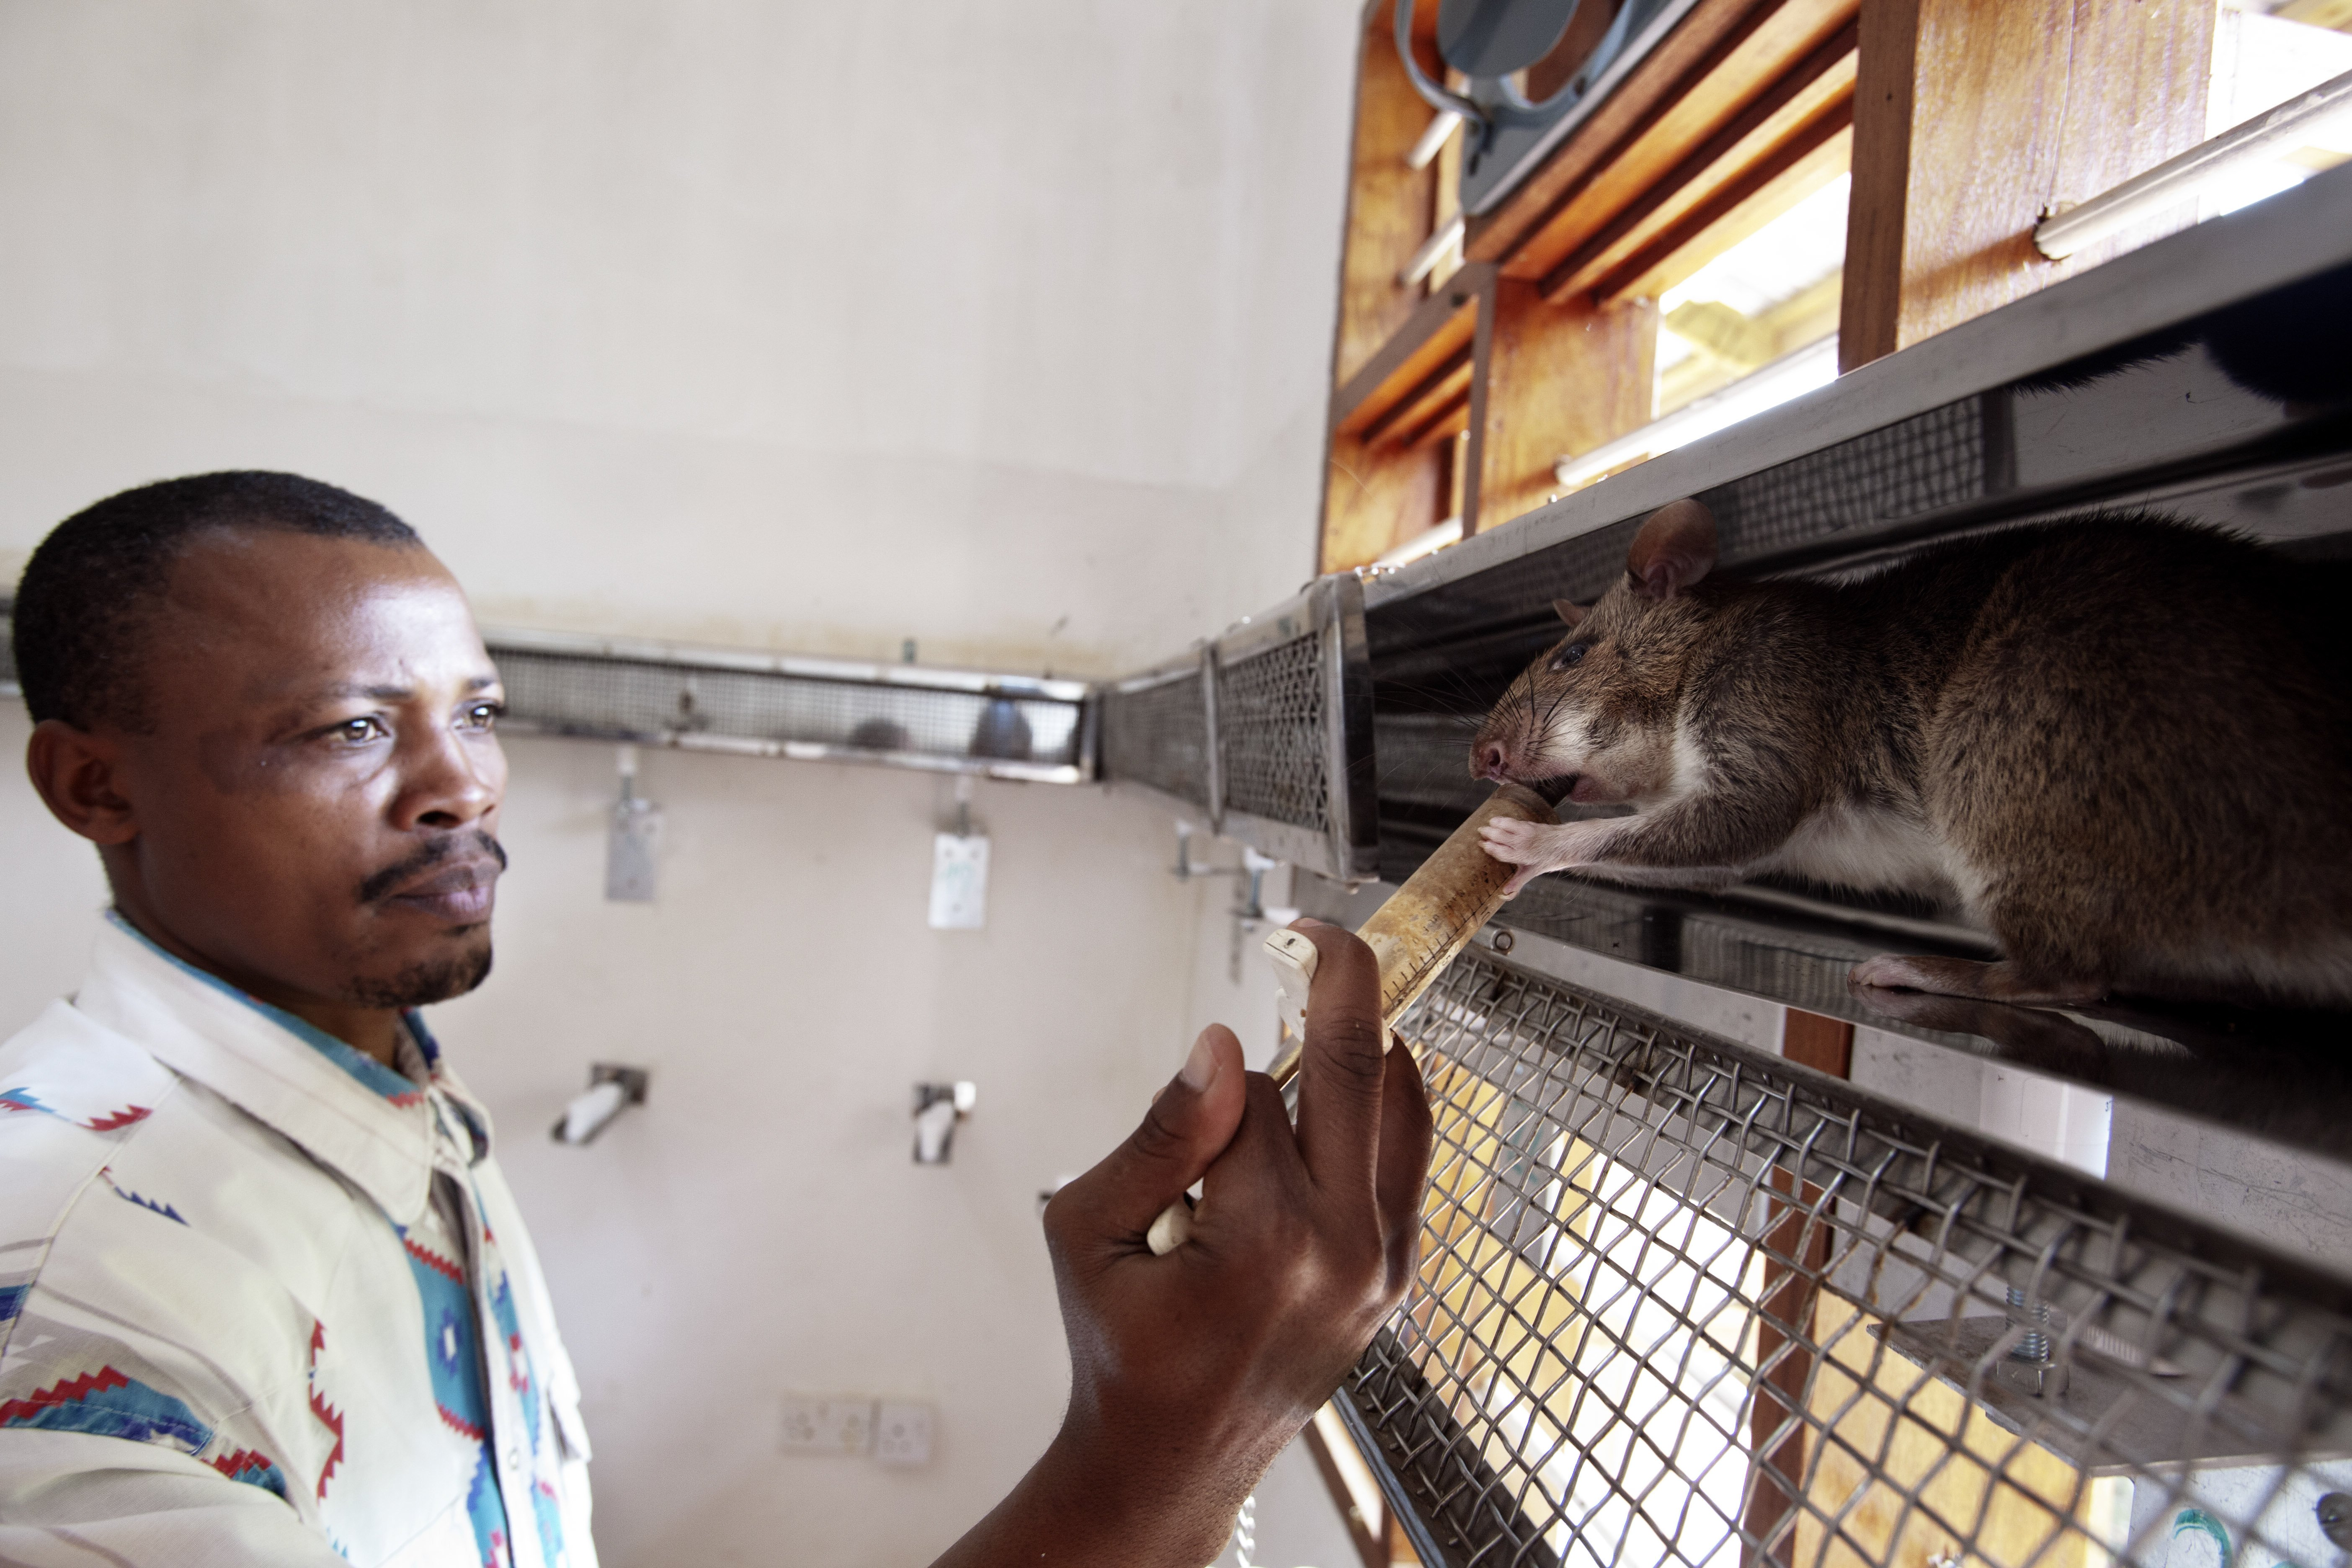 A coach gives pureed fruit to the rat in a corridor-shaped cage on June 20, 2014 in Morogoro, Tanzania. . The rat is being trained to detect TNT inside the cage. The rat stops walking when it has located the sample that contains TNT and is rewarded with the fruit.